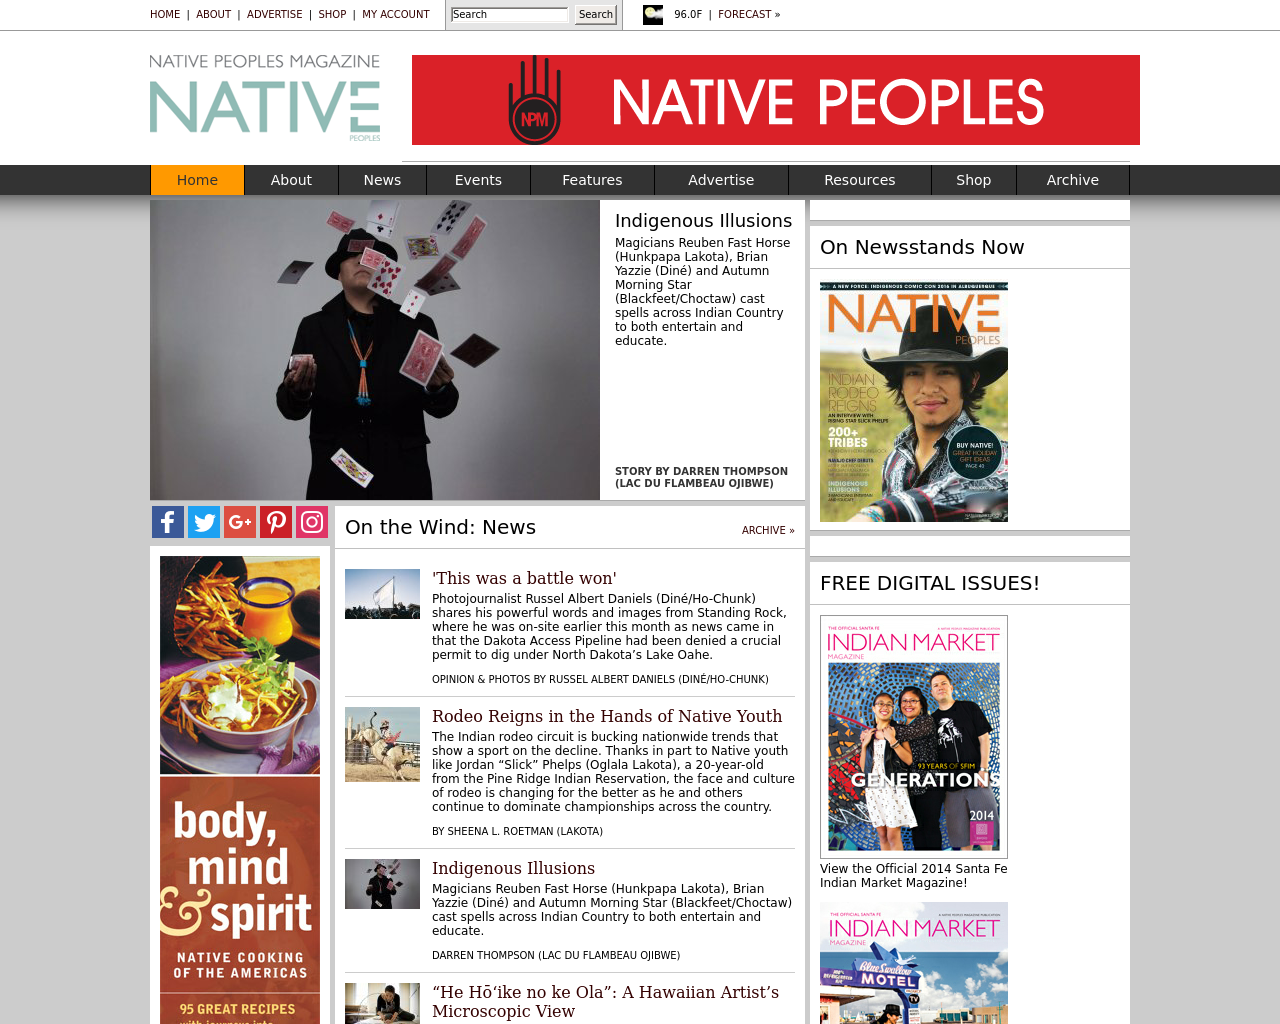 Native-Peoples-Magazine-Advertising-Reviews-Pricing